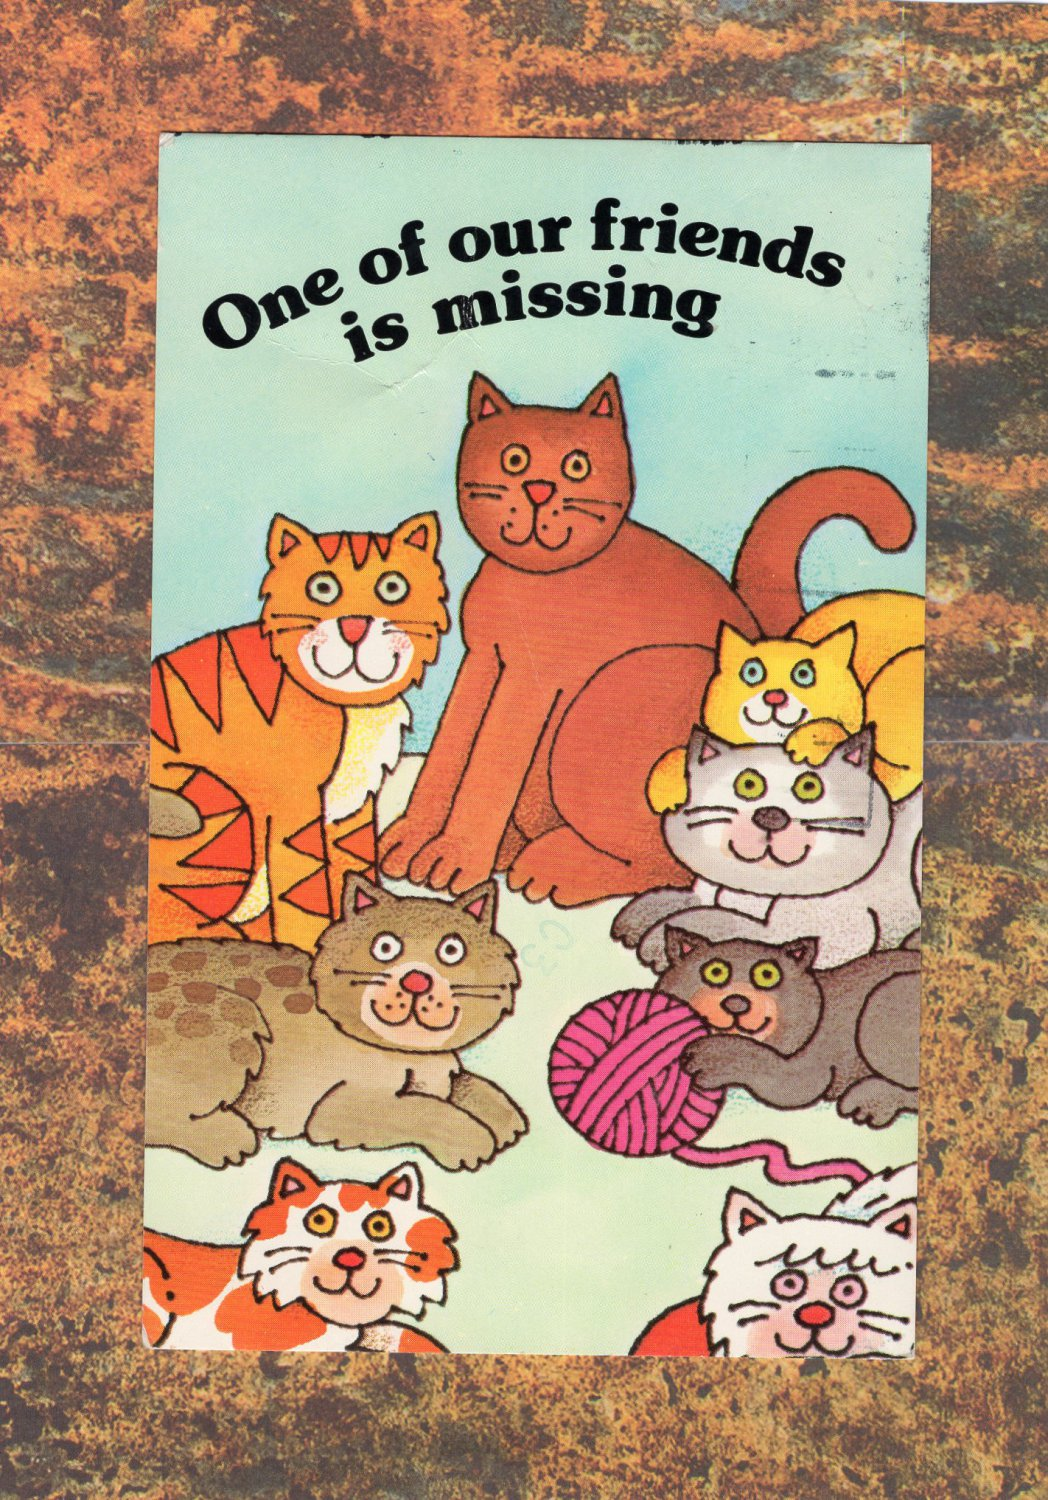 One of Our Friends Is Missing Humor/Funny Cats Postcard Felines Staring Wide-Eyed